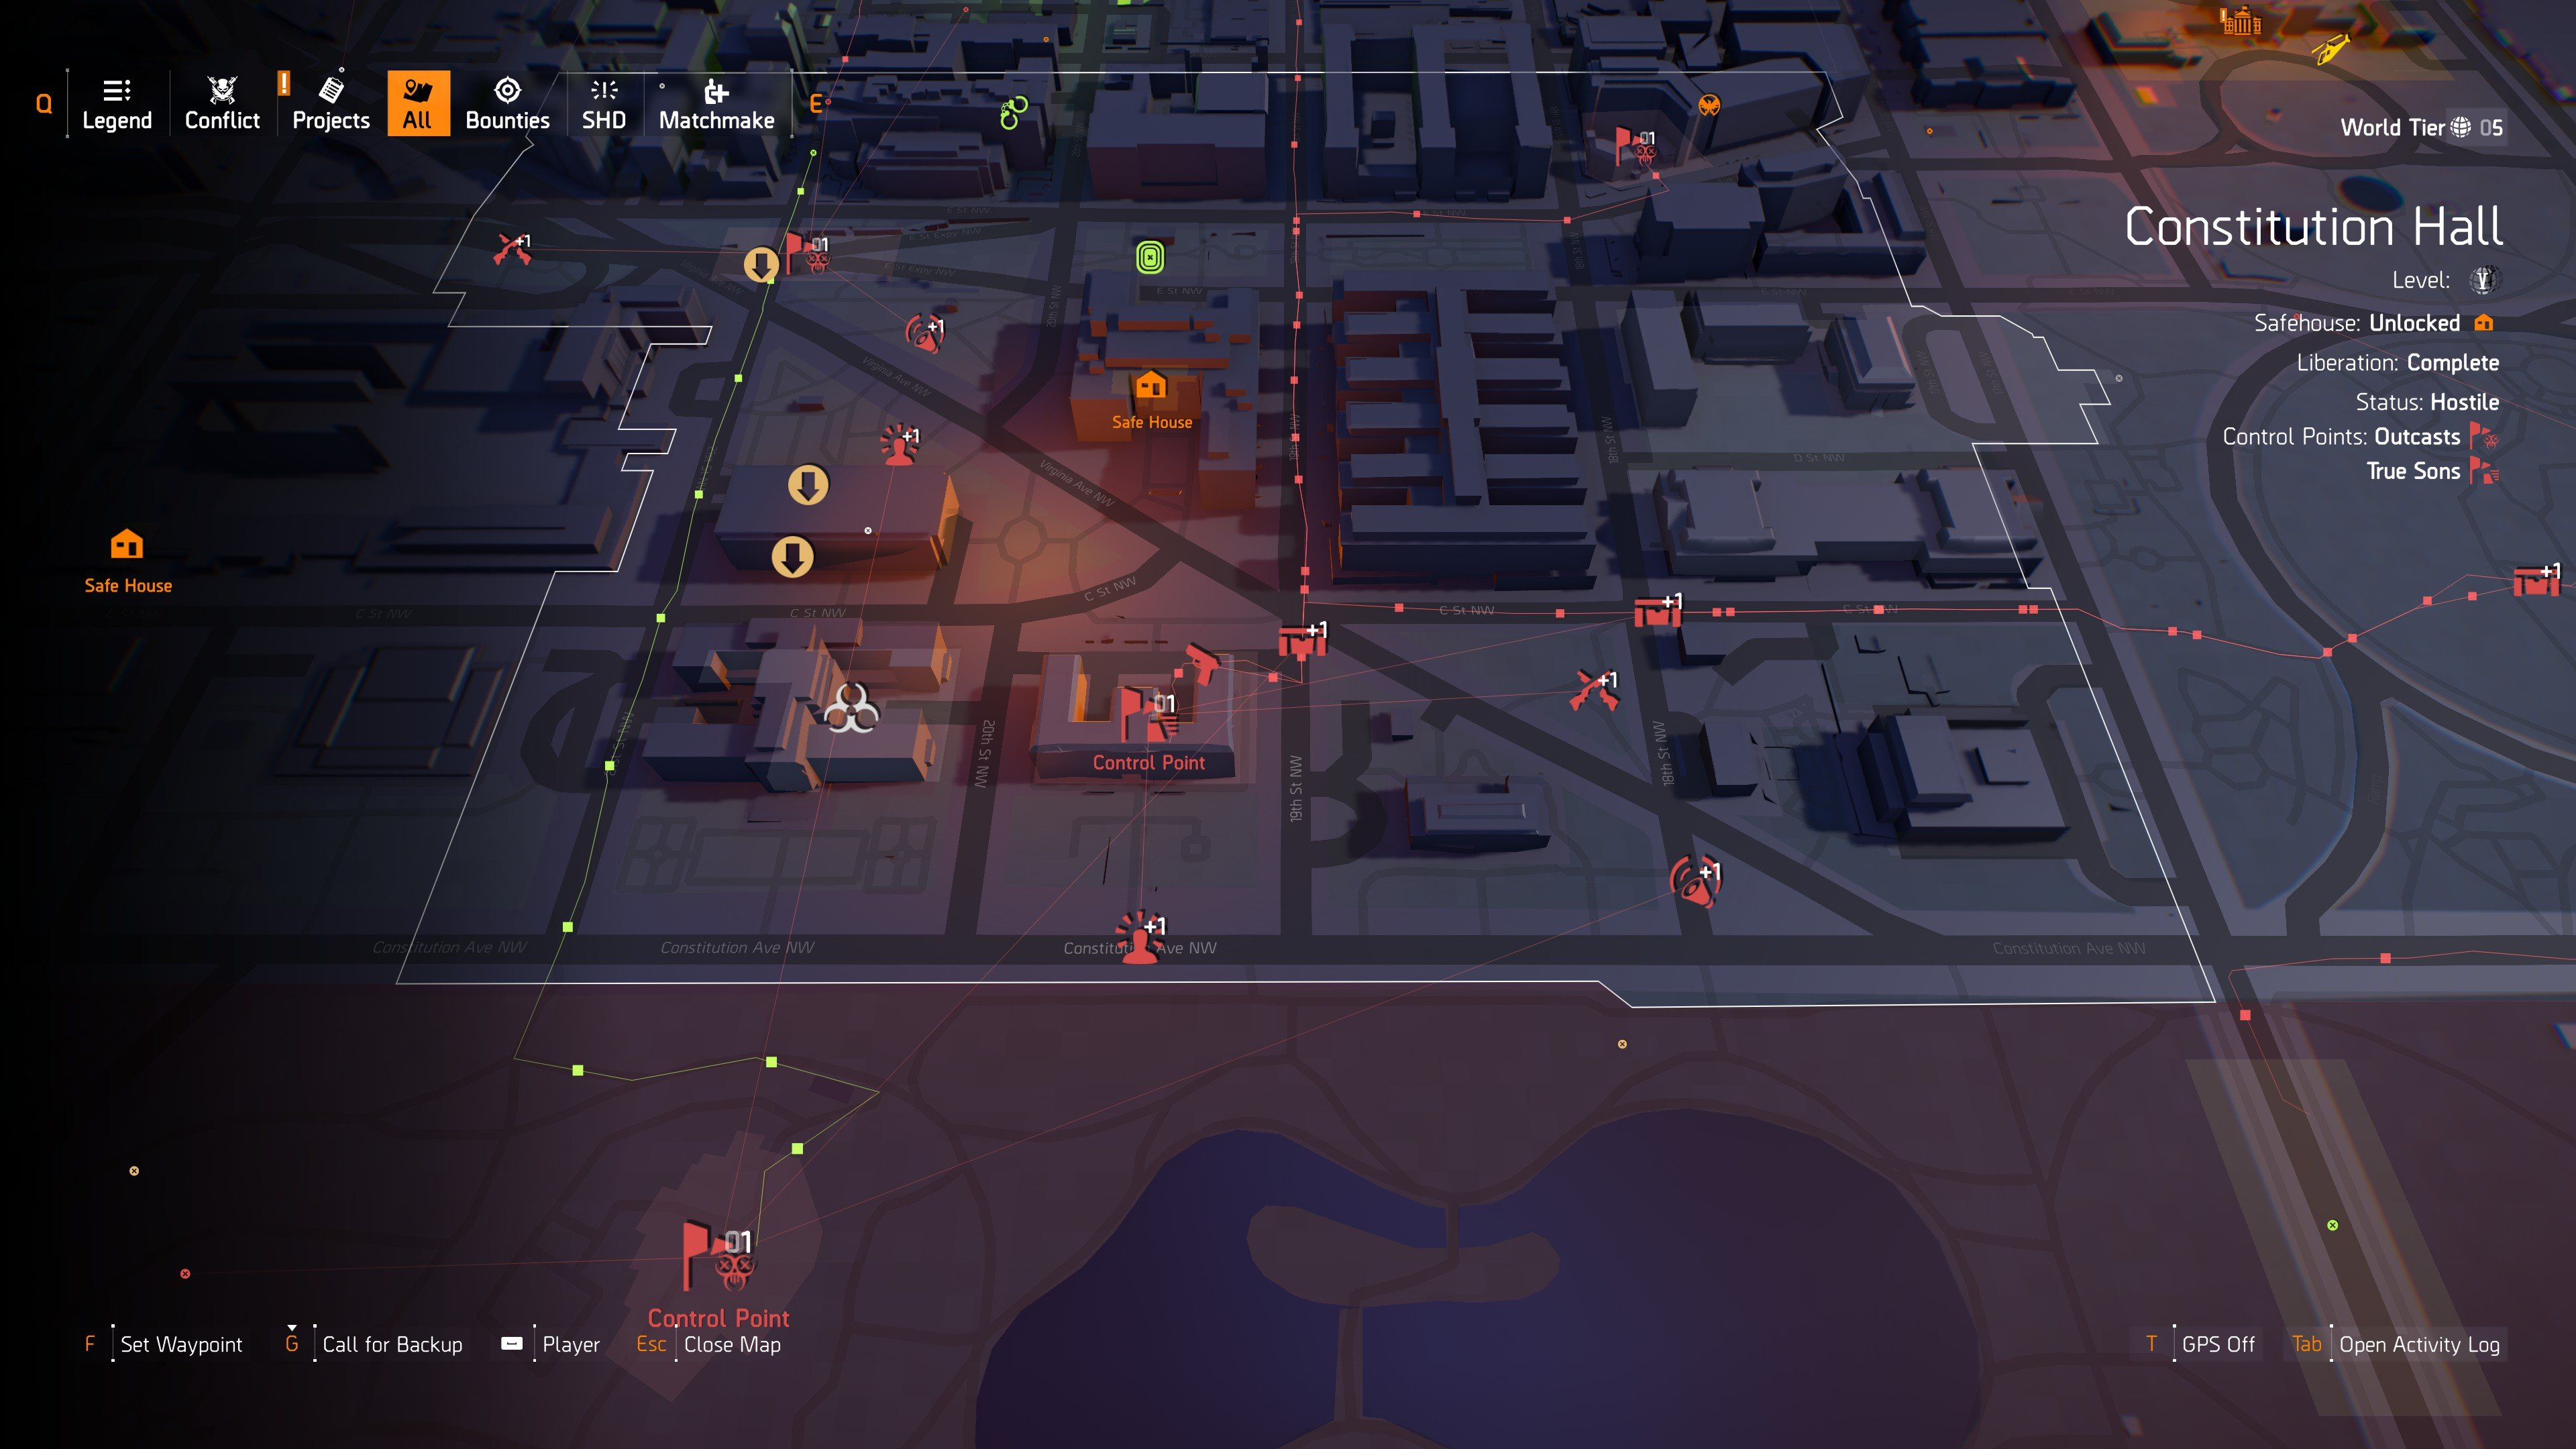 how to increase control point alert level in The Division 2